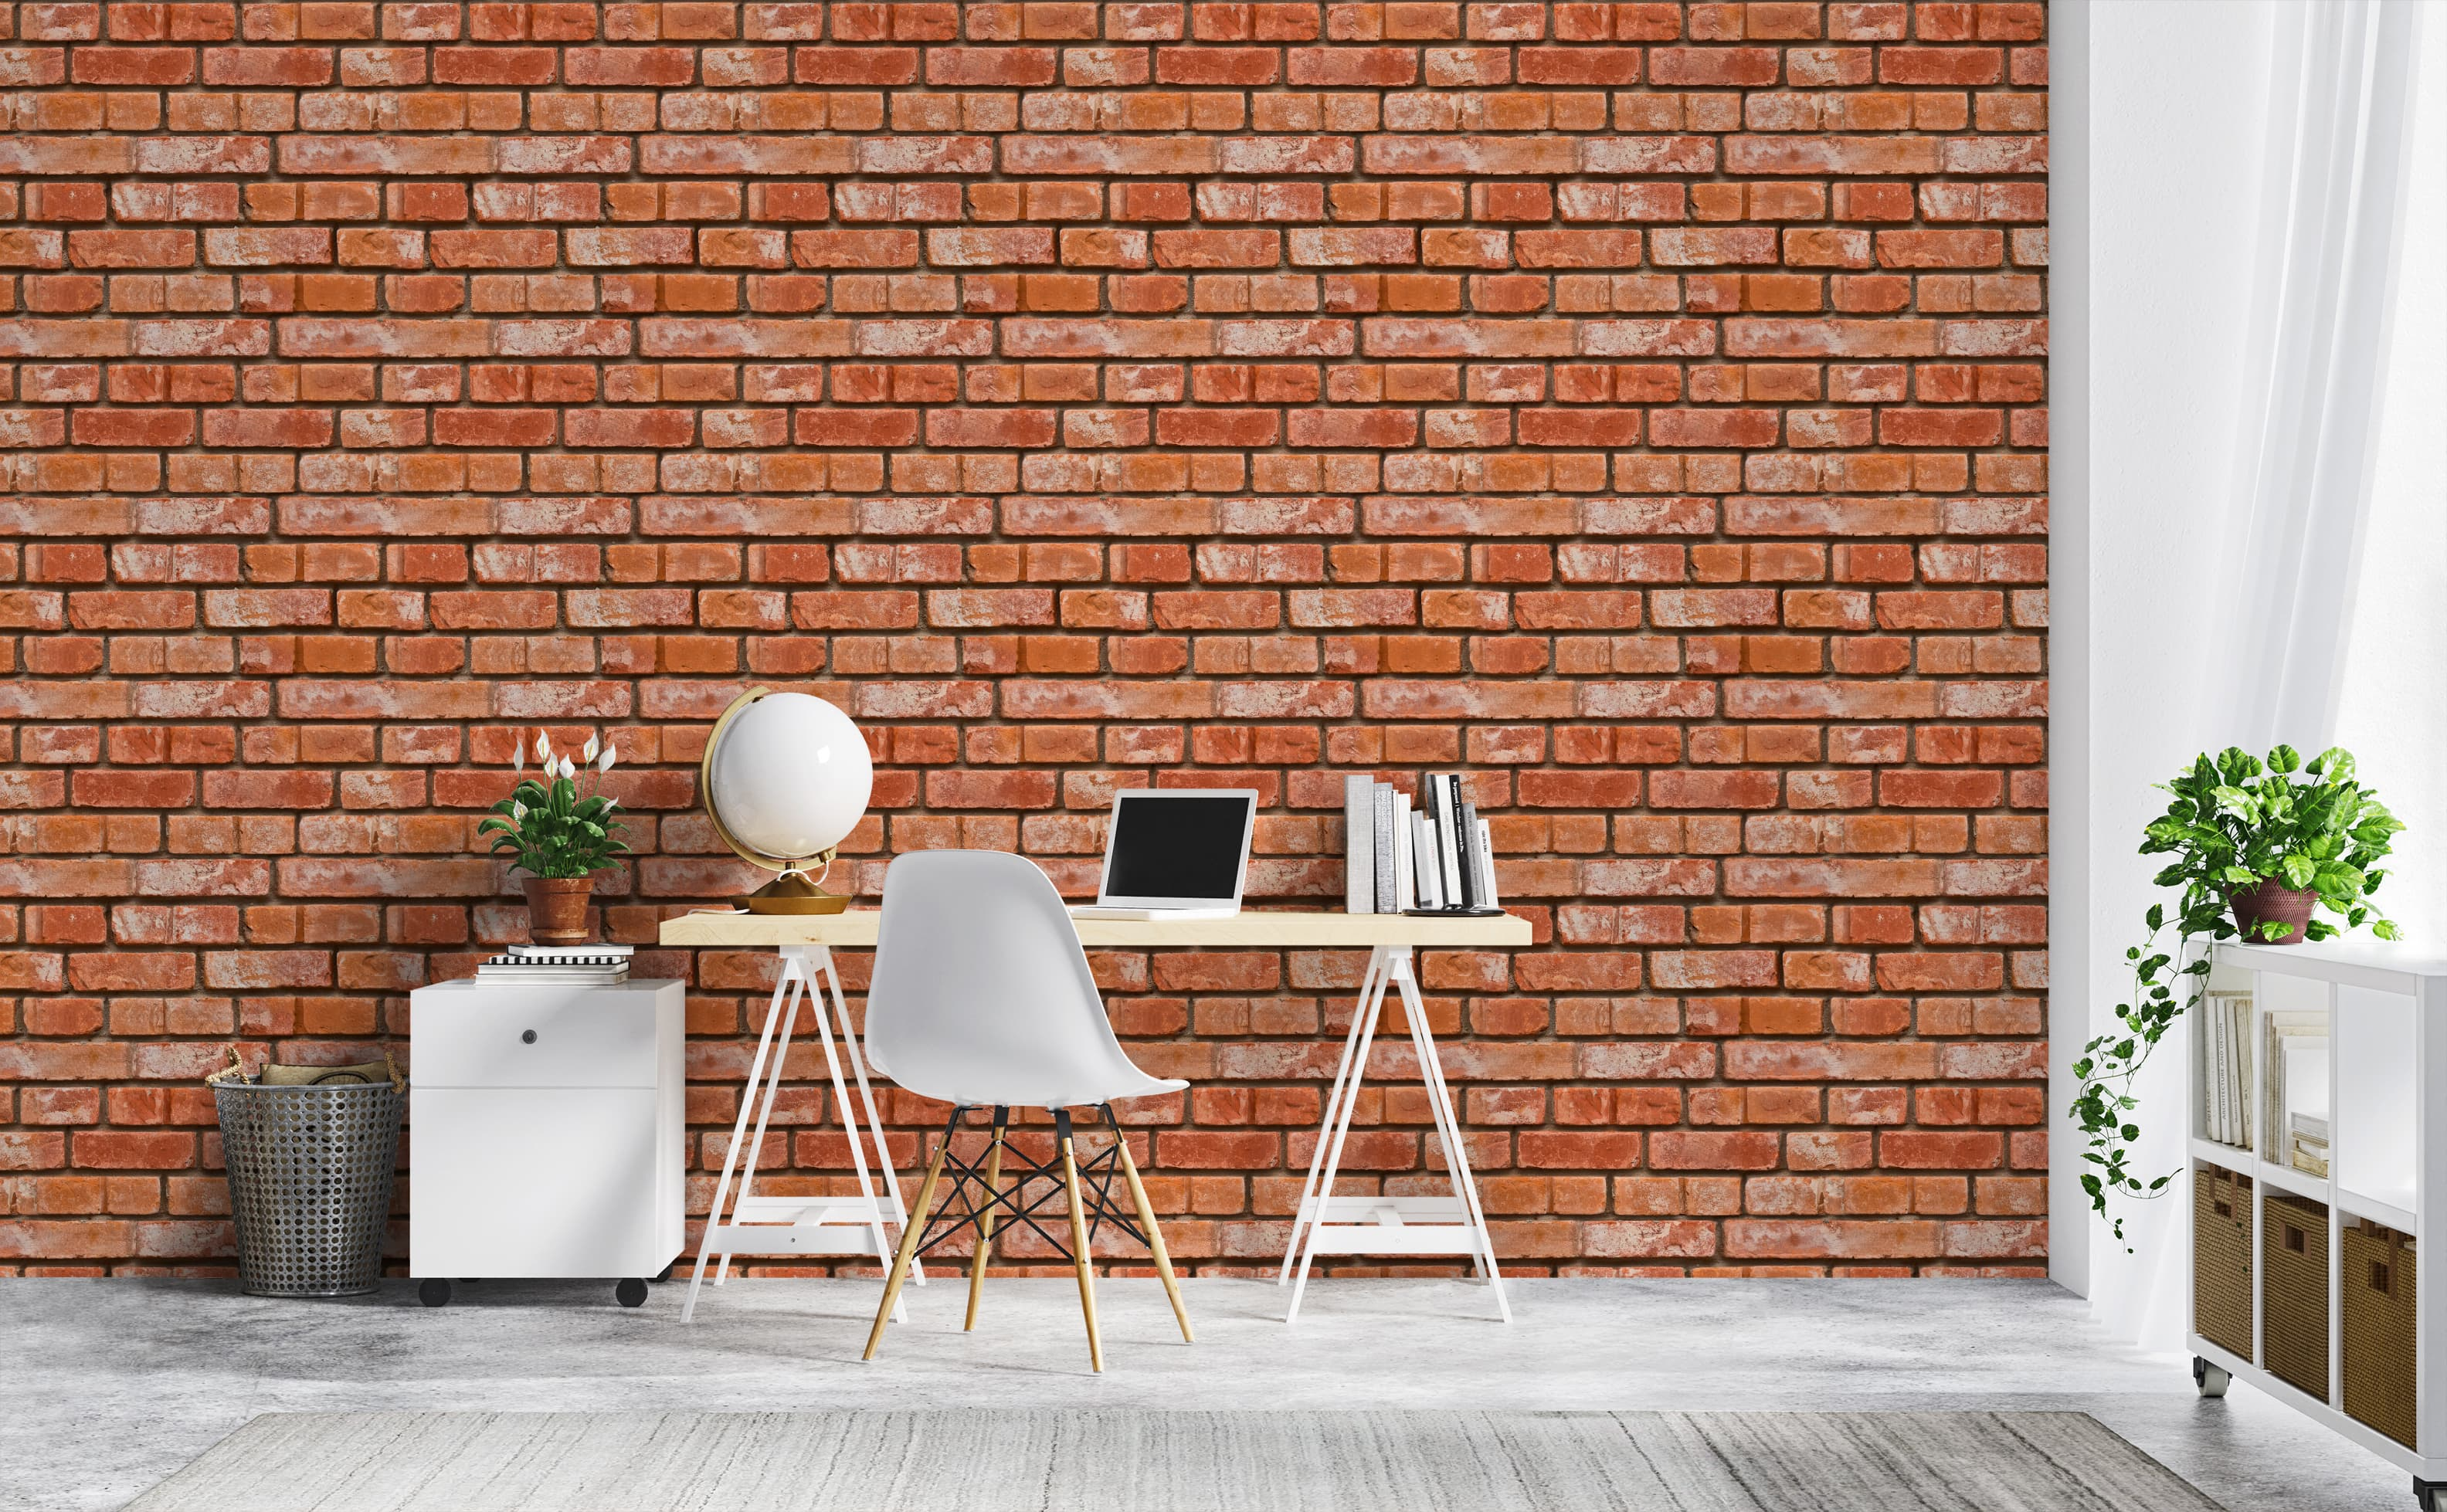 w0267 1s Realistic Bricks Removable Peel and Stick Wallpaper For Home Offices 1